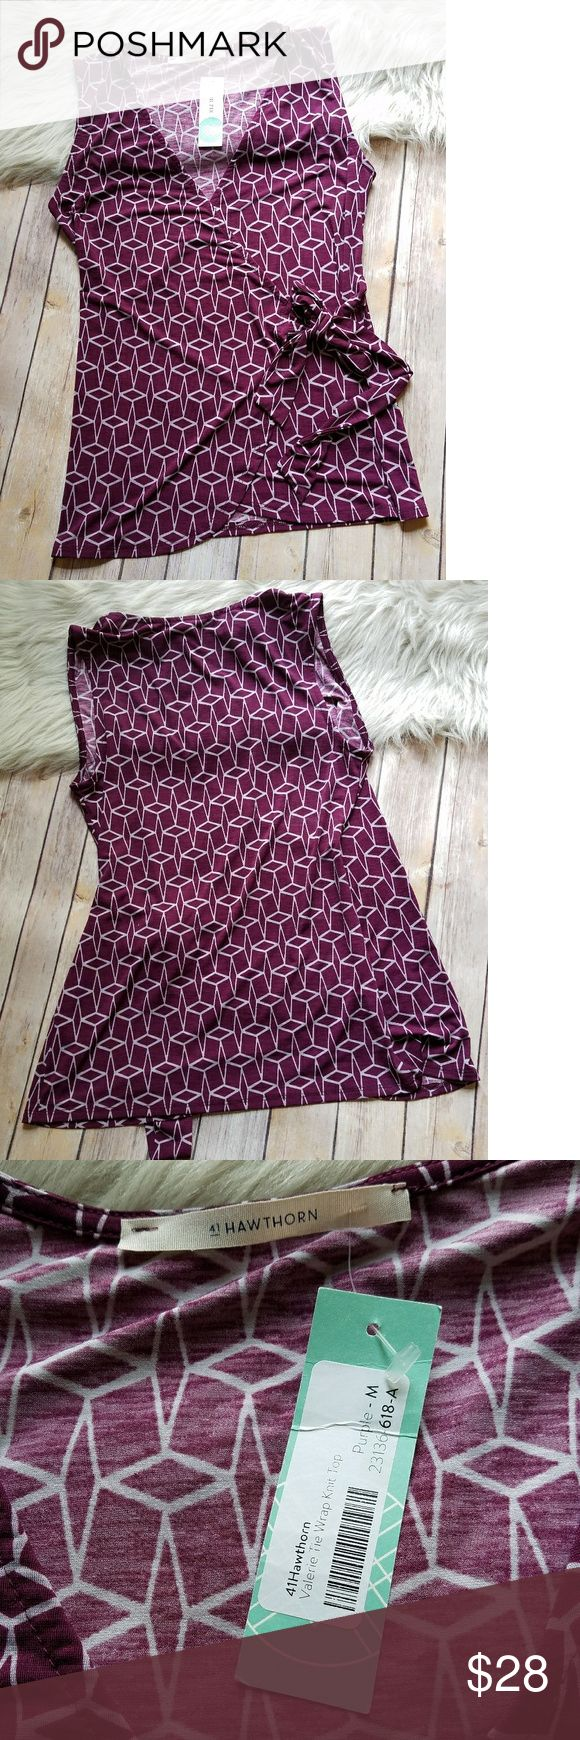 NWT 41 Hawthorn Stitchfix purple wrap top Medium Hawthorn for Stitchfix purple wrap top. Ties on the side. All over diamond pattern. Brand new with tags. 95% polyester, 5% spandex. Hand wash. Hawthorn Tops Blouses